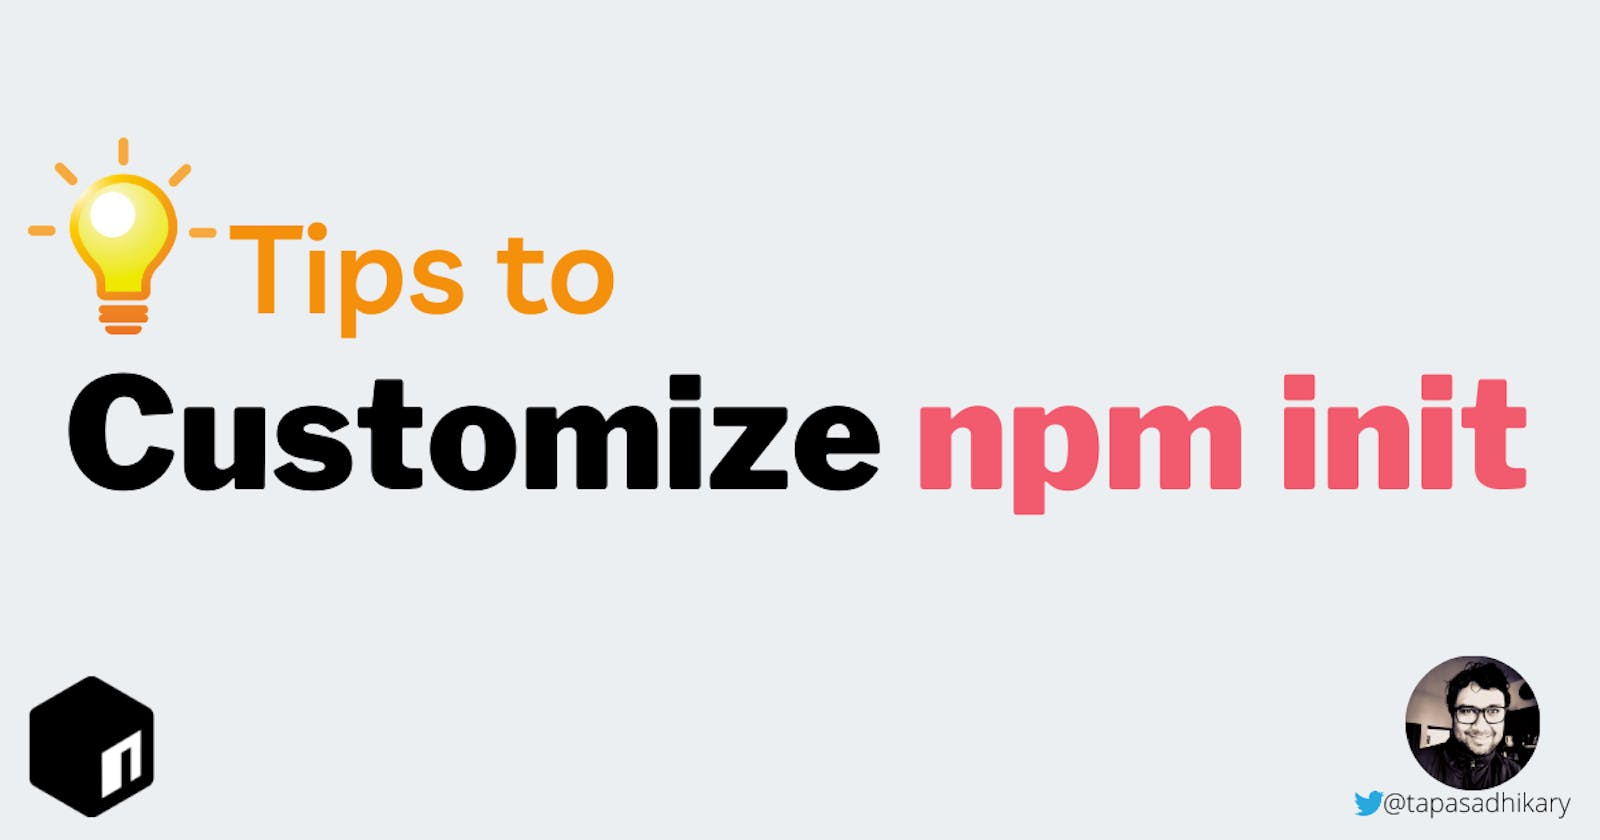 Tips to customize npm init to make it your own